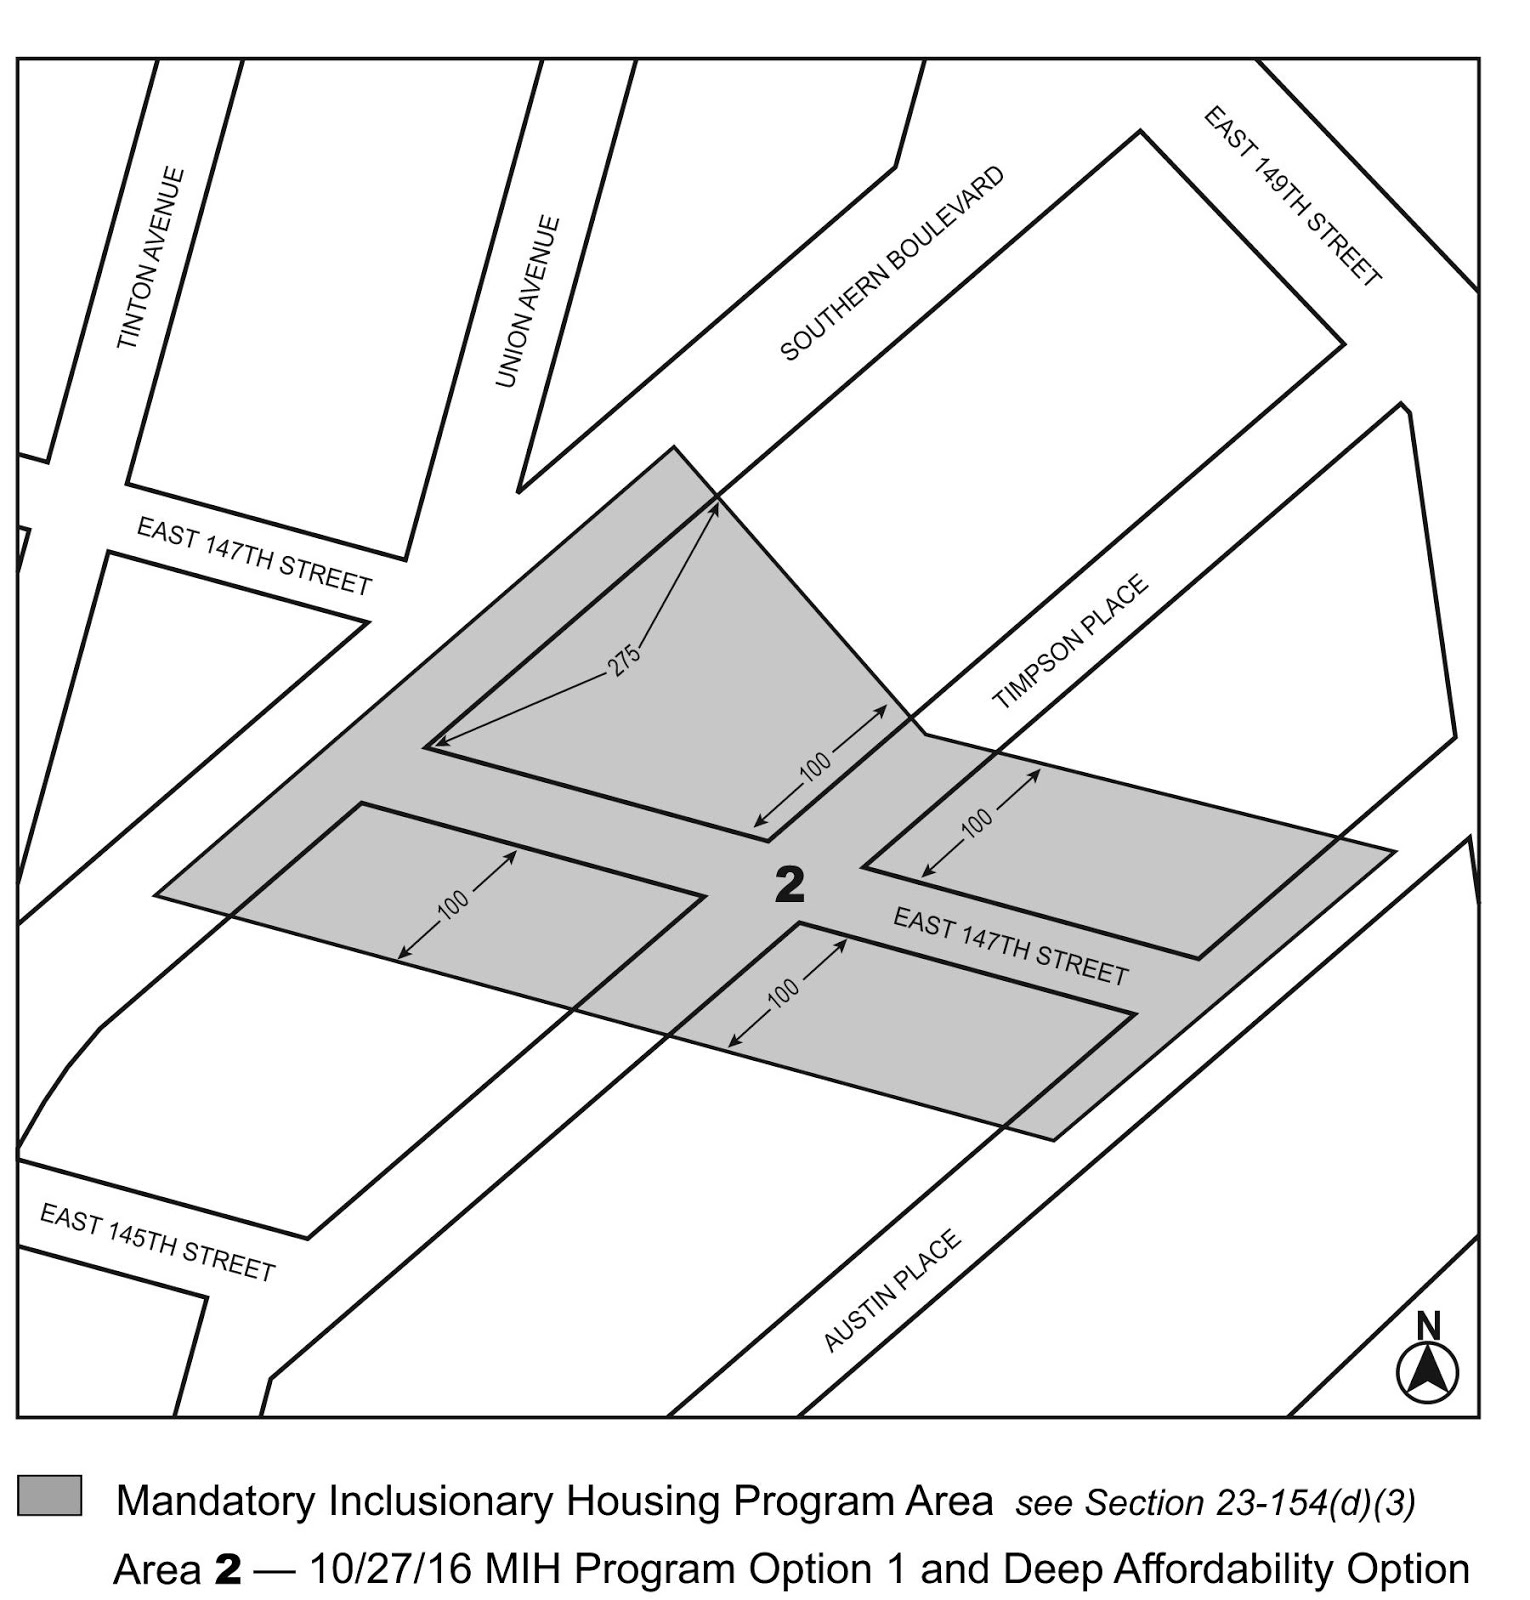 Zoning Resolutions F-Inclusionary Housing Designated Areas and Mandatory Inclusionary Housing Areas_2.7